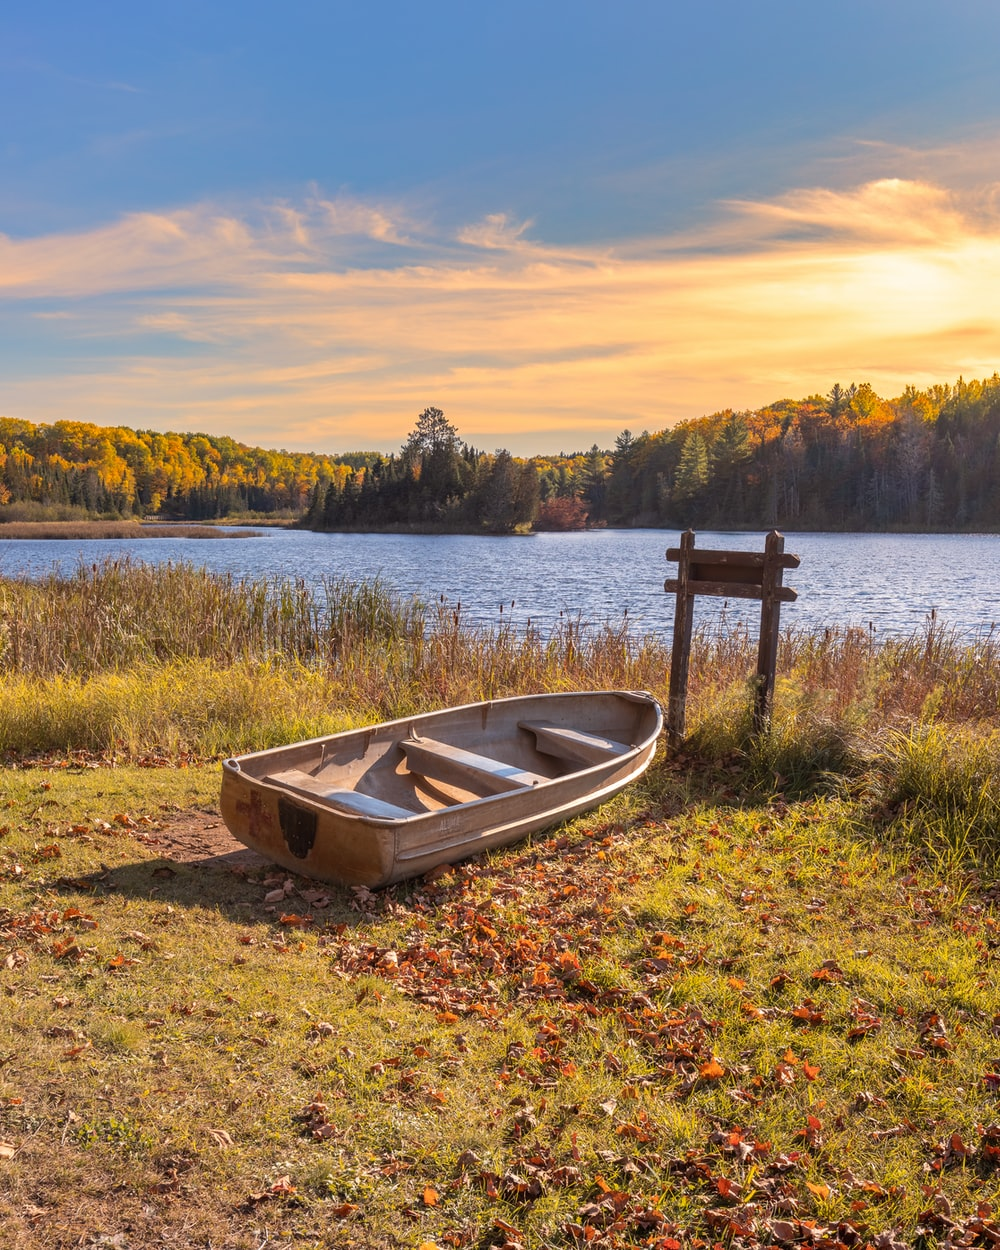 white and brown boat on green grass near lake during sunset